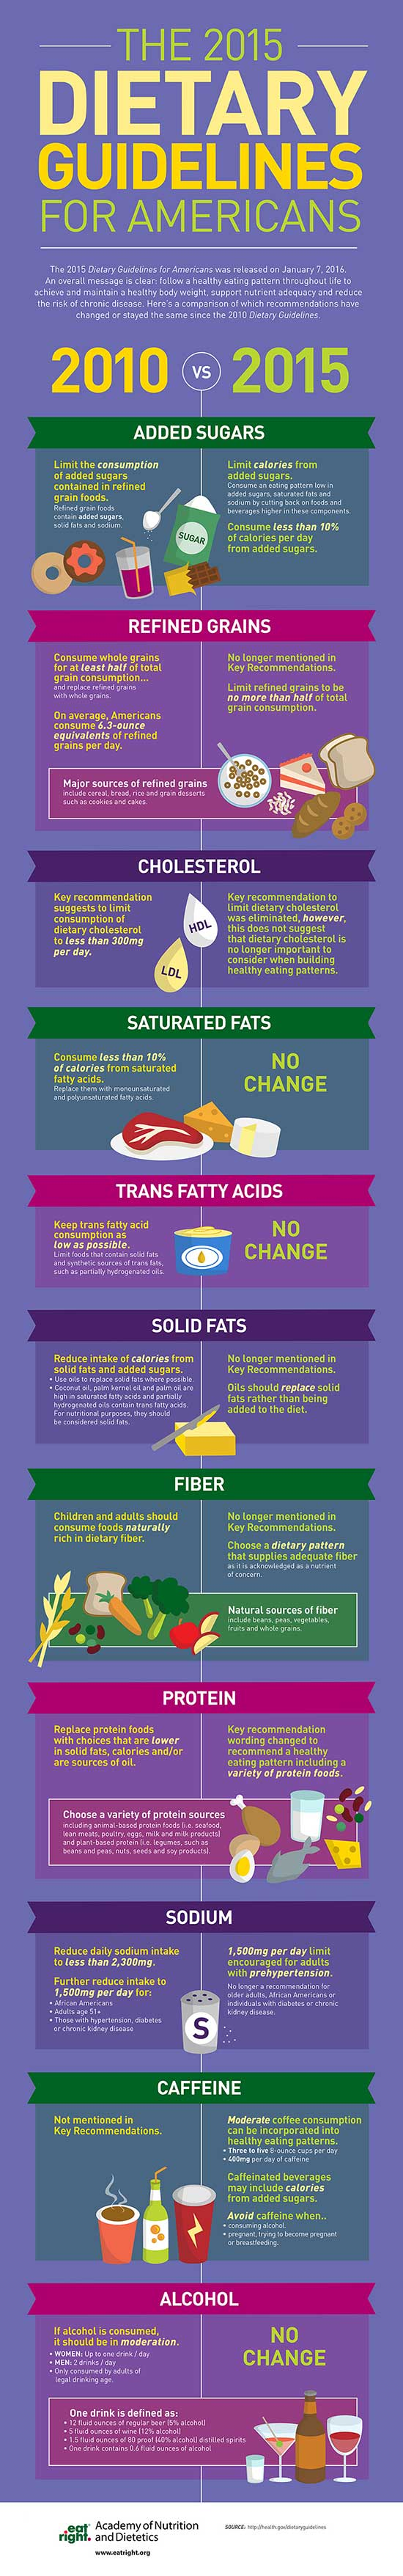 The Academy infographic for the 2015 Dietary Guidelines for Americans.